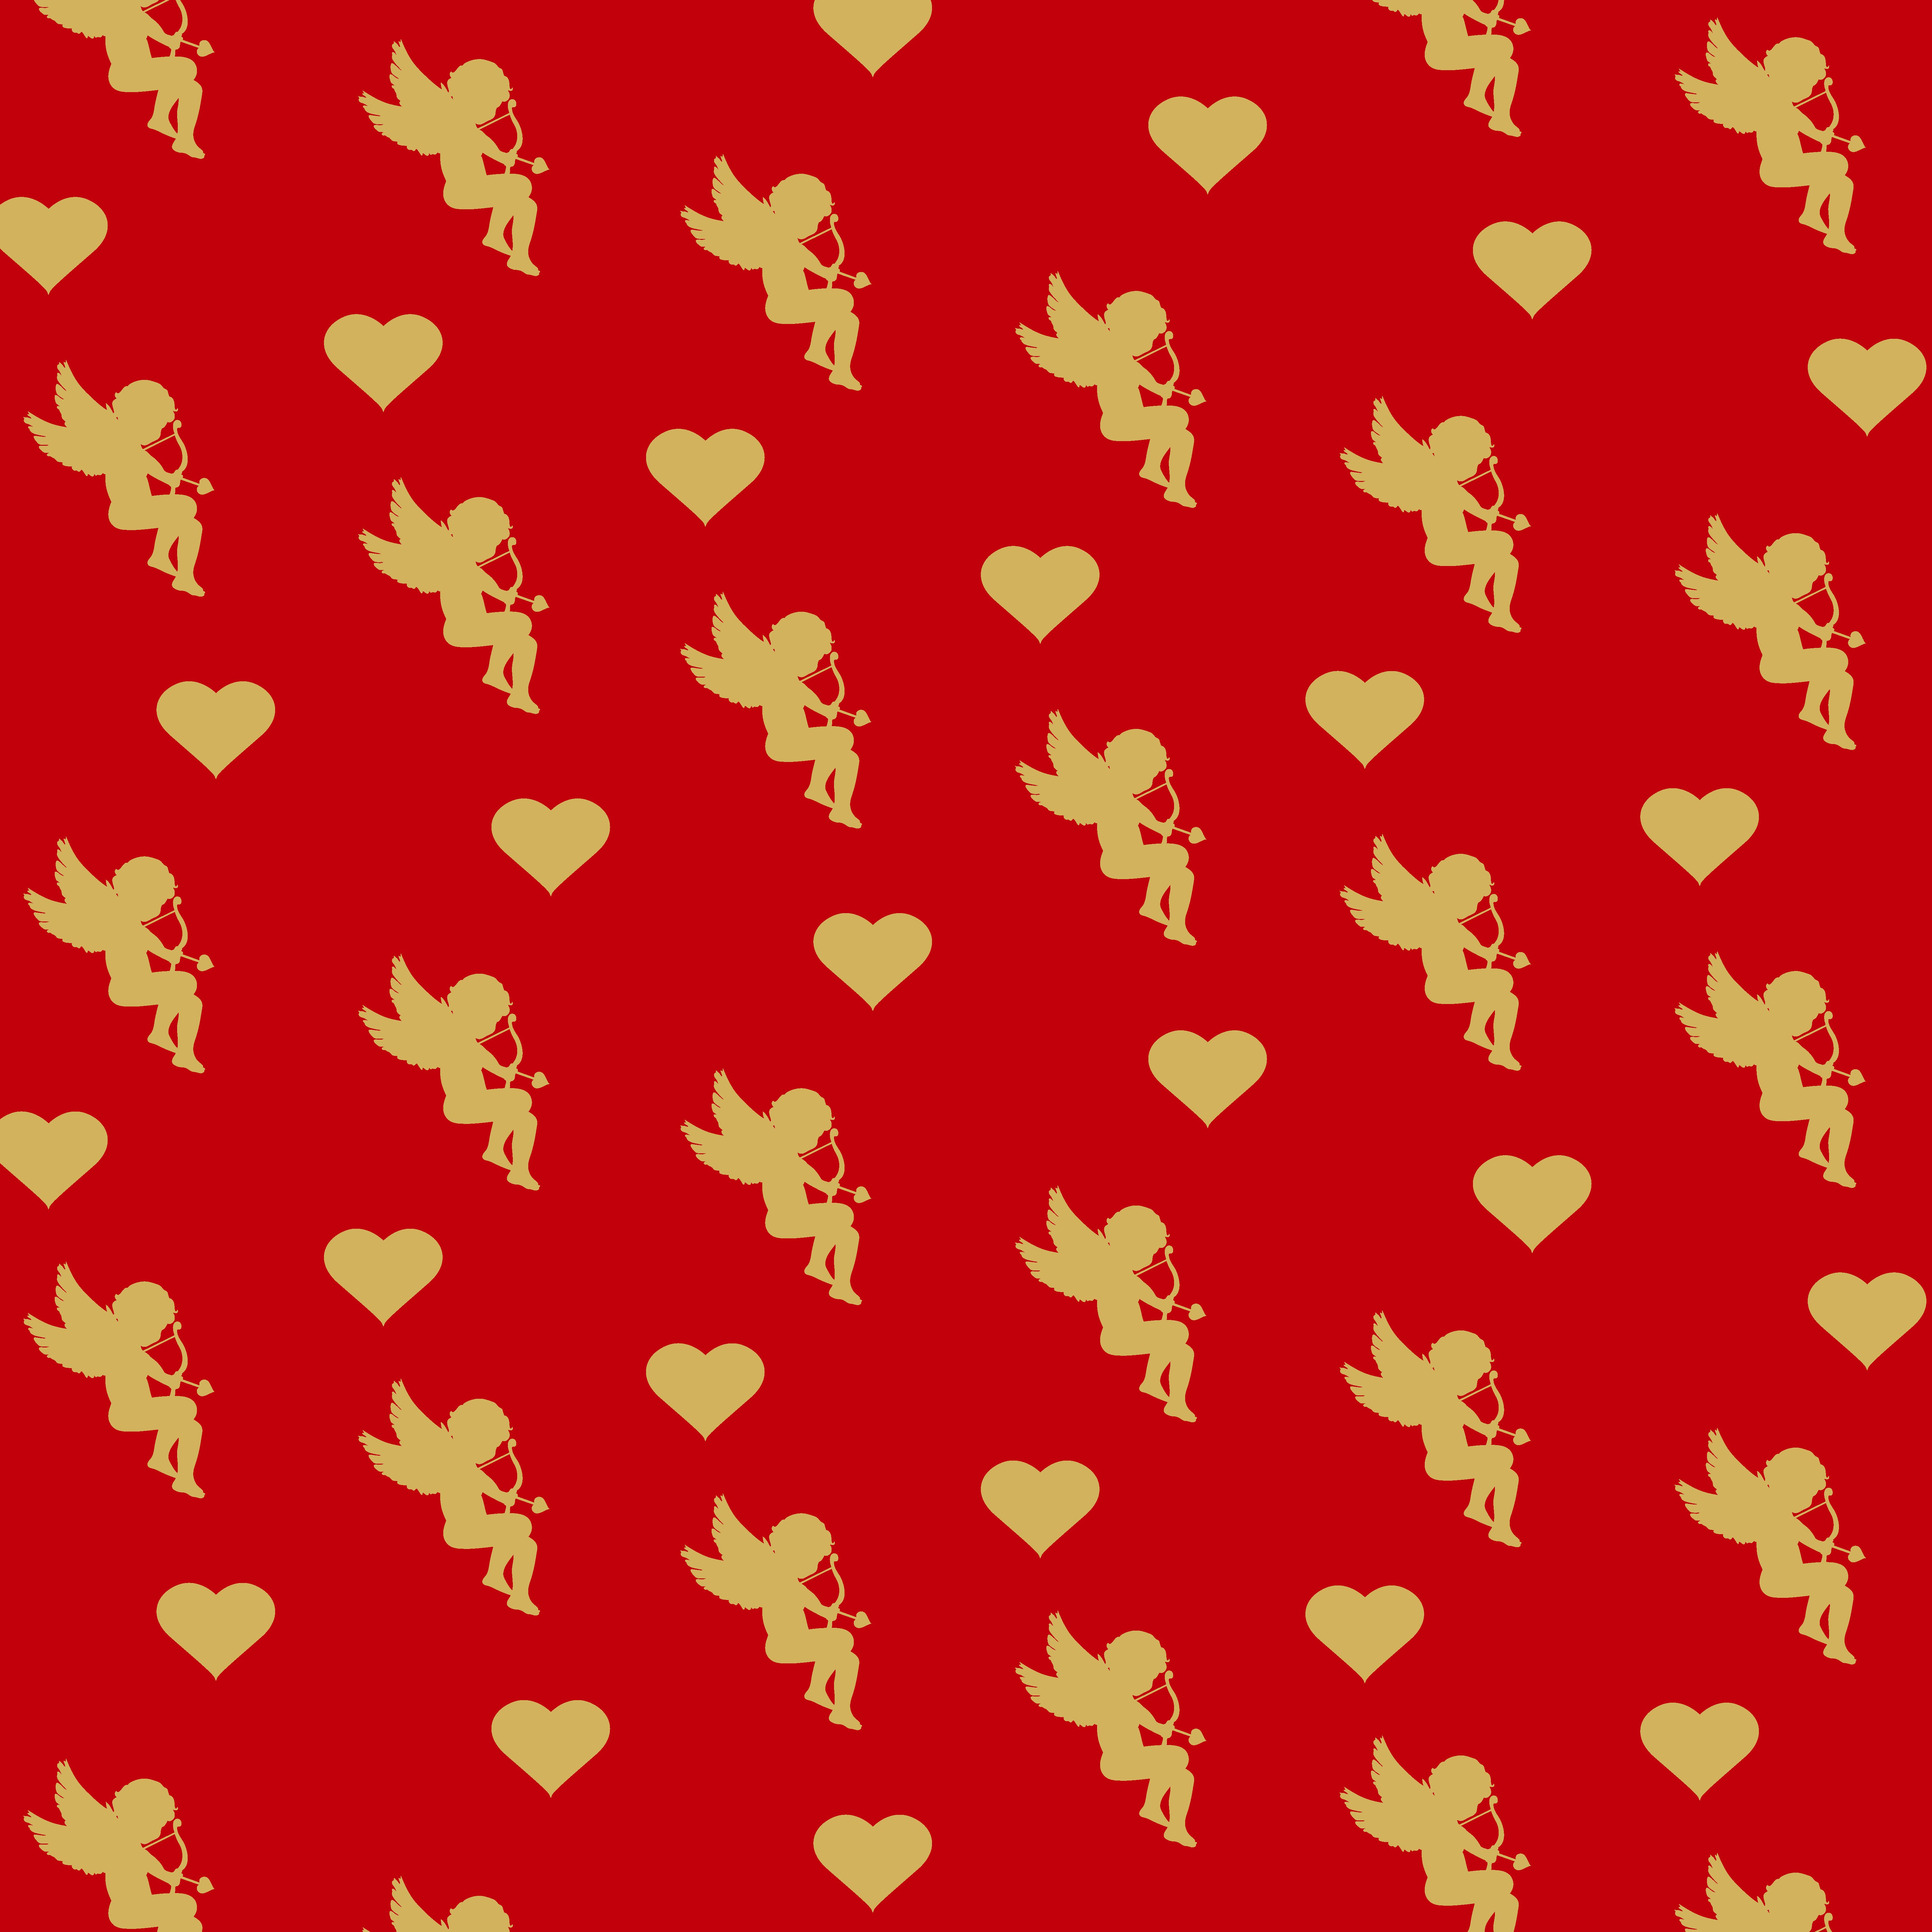 wrapping paper valentines day illustrations creative market - Valentines Day Wrapping Paper